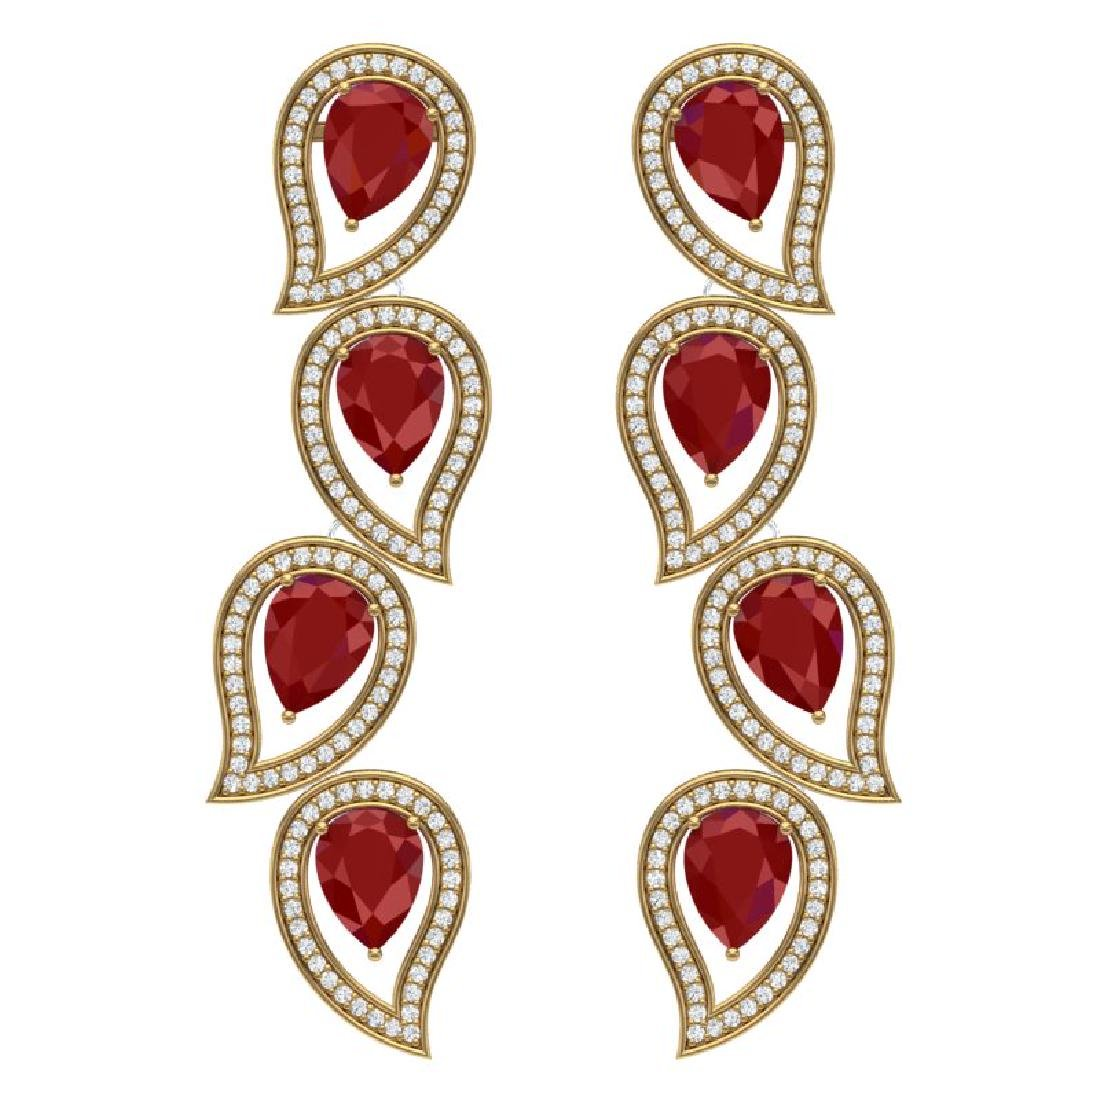 16.44 CTW Royalty Designer Ruby & VS Diamond Earrings